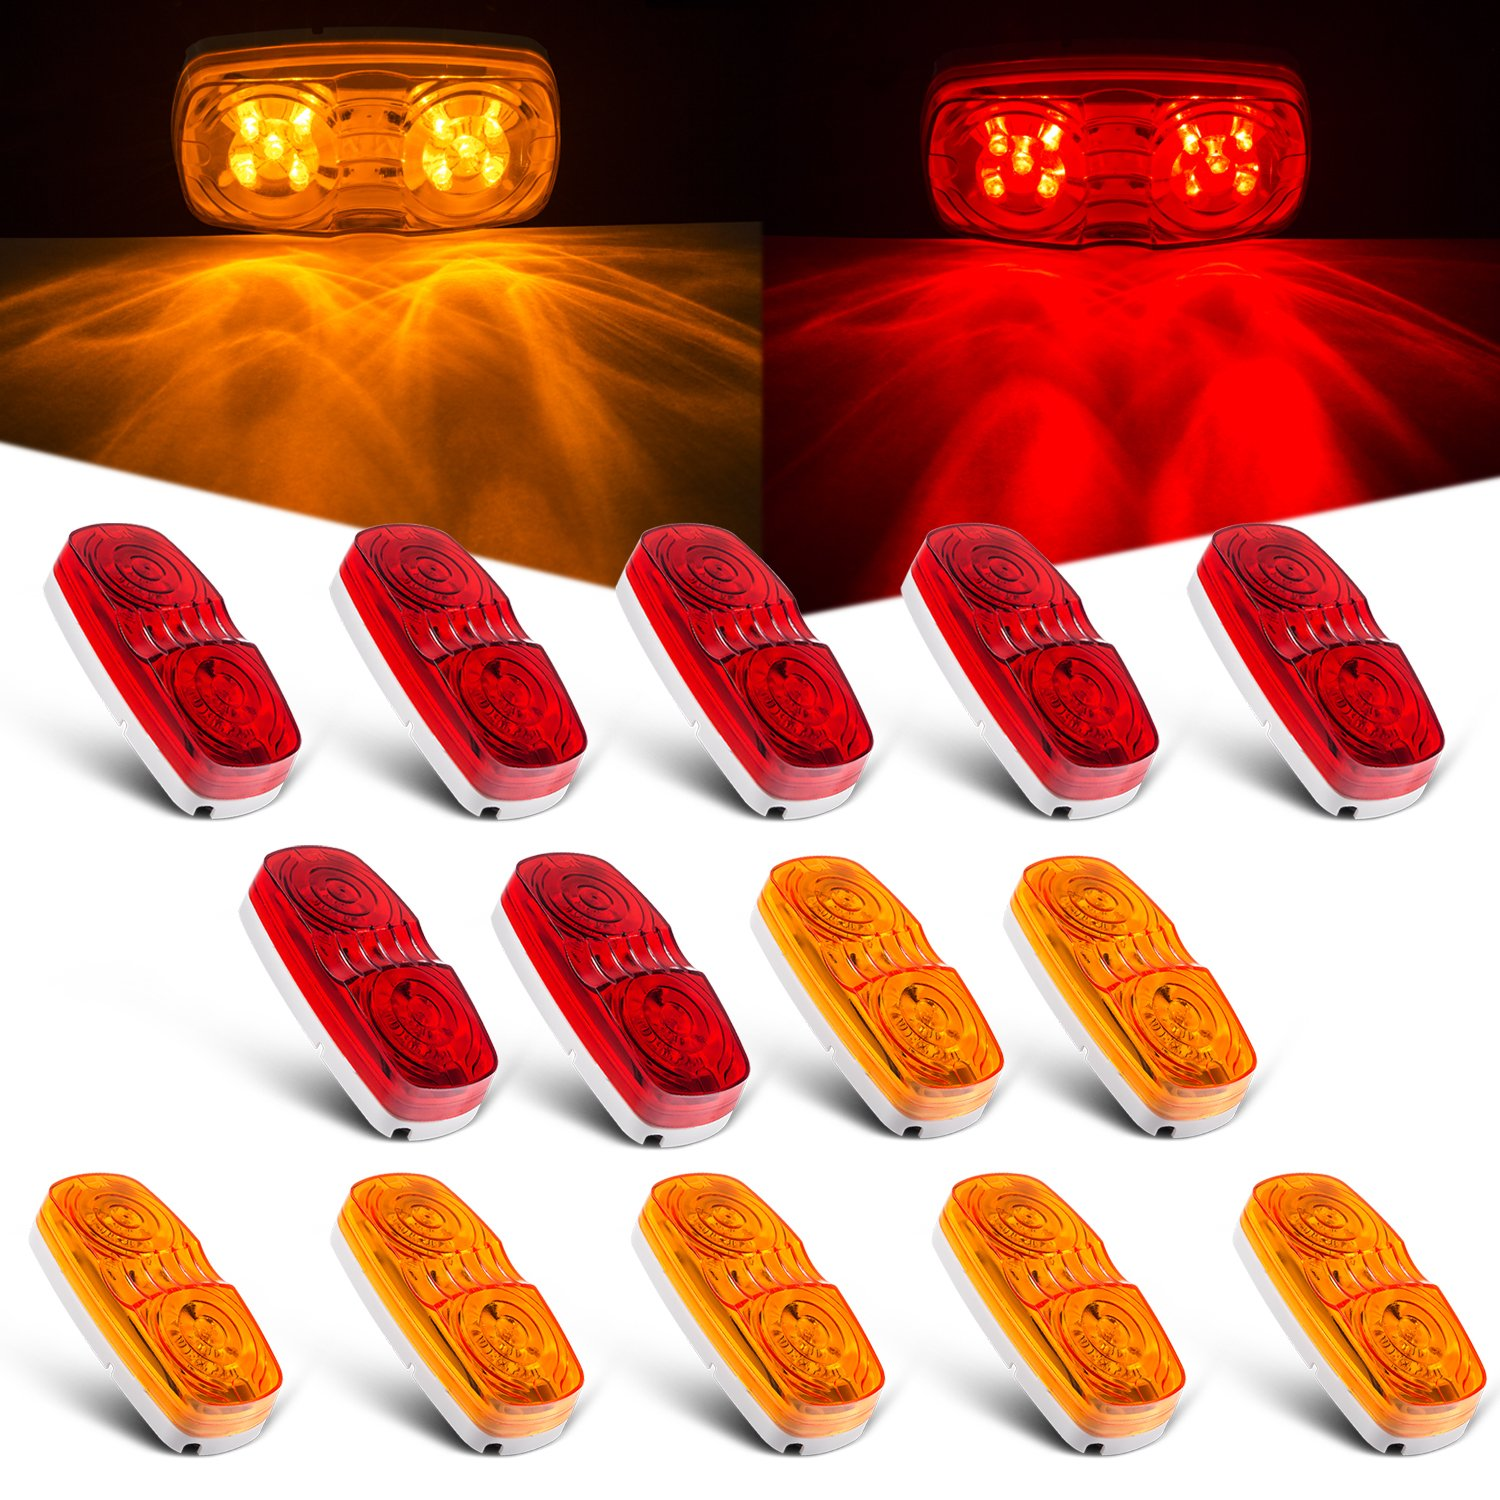 Tinpec 14 x LED Trailer Marker Lights with Double Bullseye 10 Diodes Waterproof Clearance Lights Rectangular Universal Side Marker Lights for Trucks, RVs, SUV, Boat, etc (7 Red+7 Amber) by Tinpec